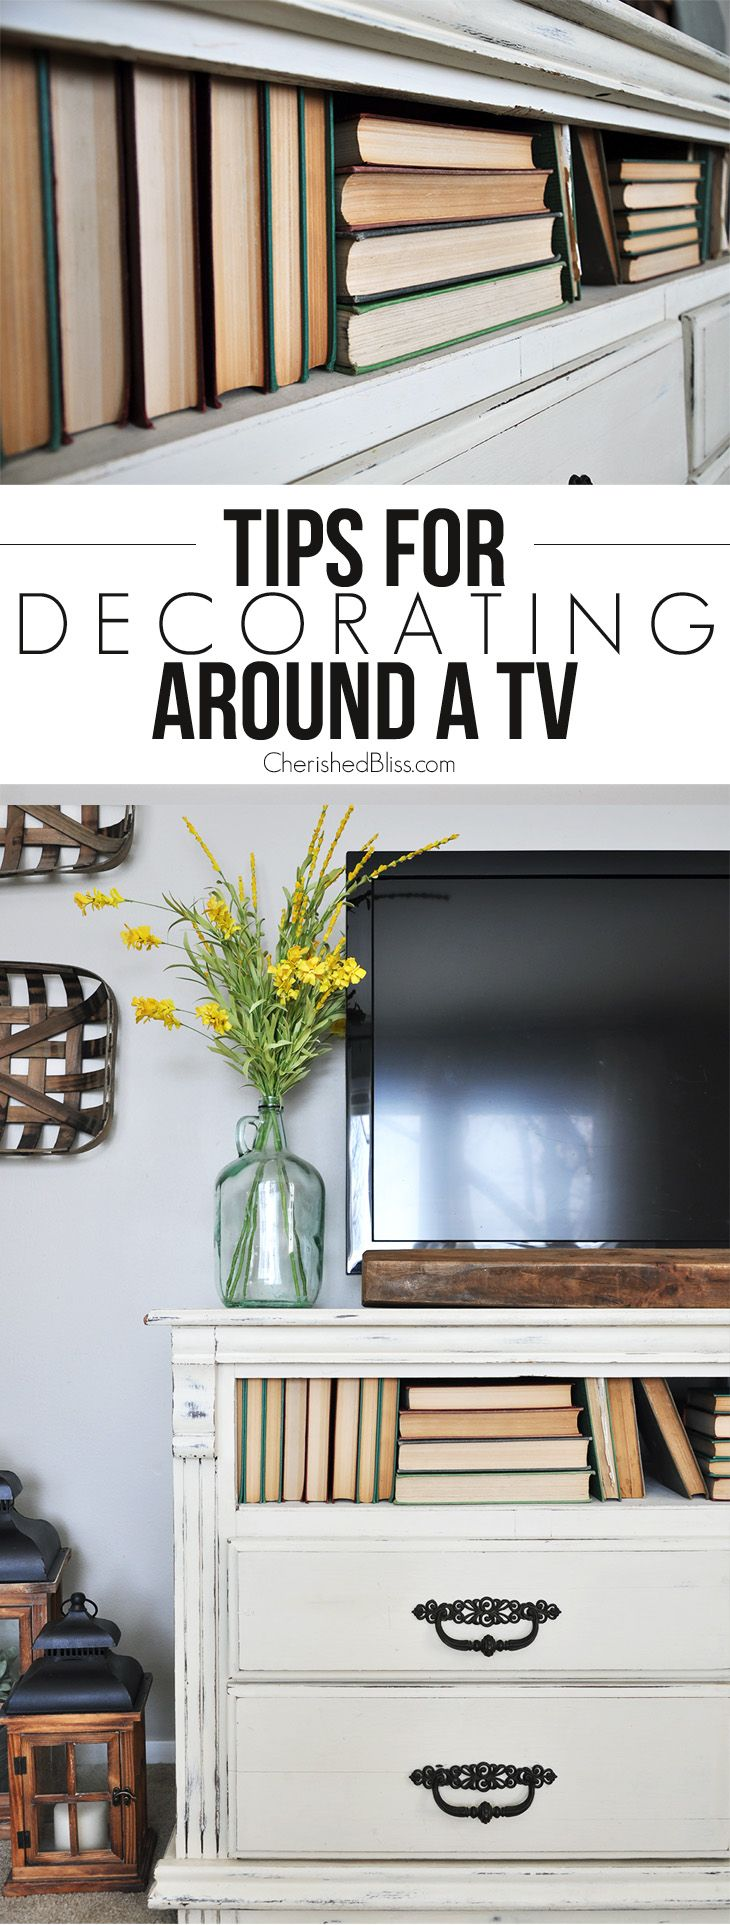 With these simple tips and tricks you will learn how to easily decorate around a tv to give your living room the look you desire! @cherished